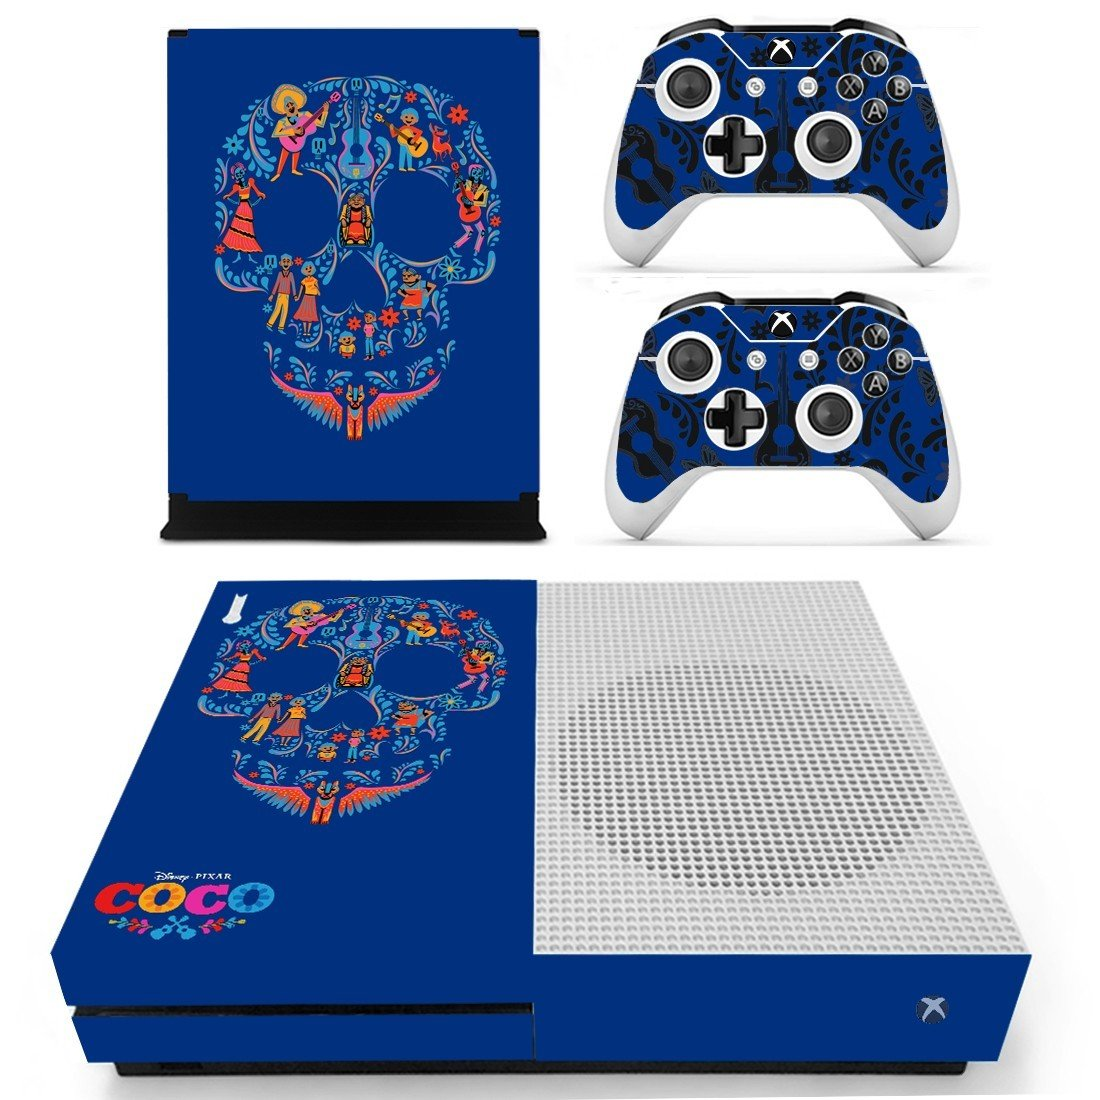 Coco the film decal skin sticker for Xbox One S console and controllers